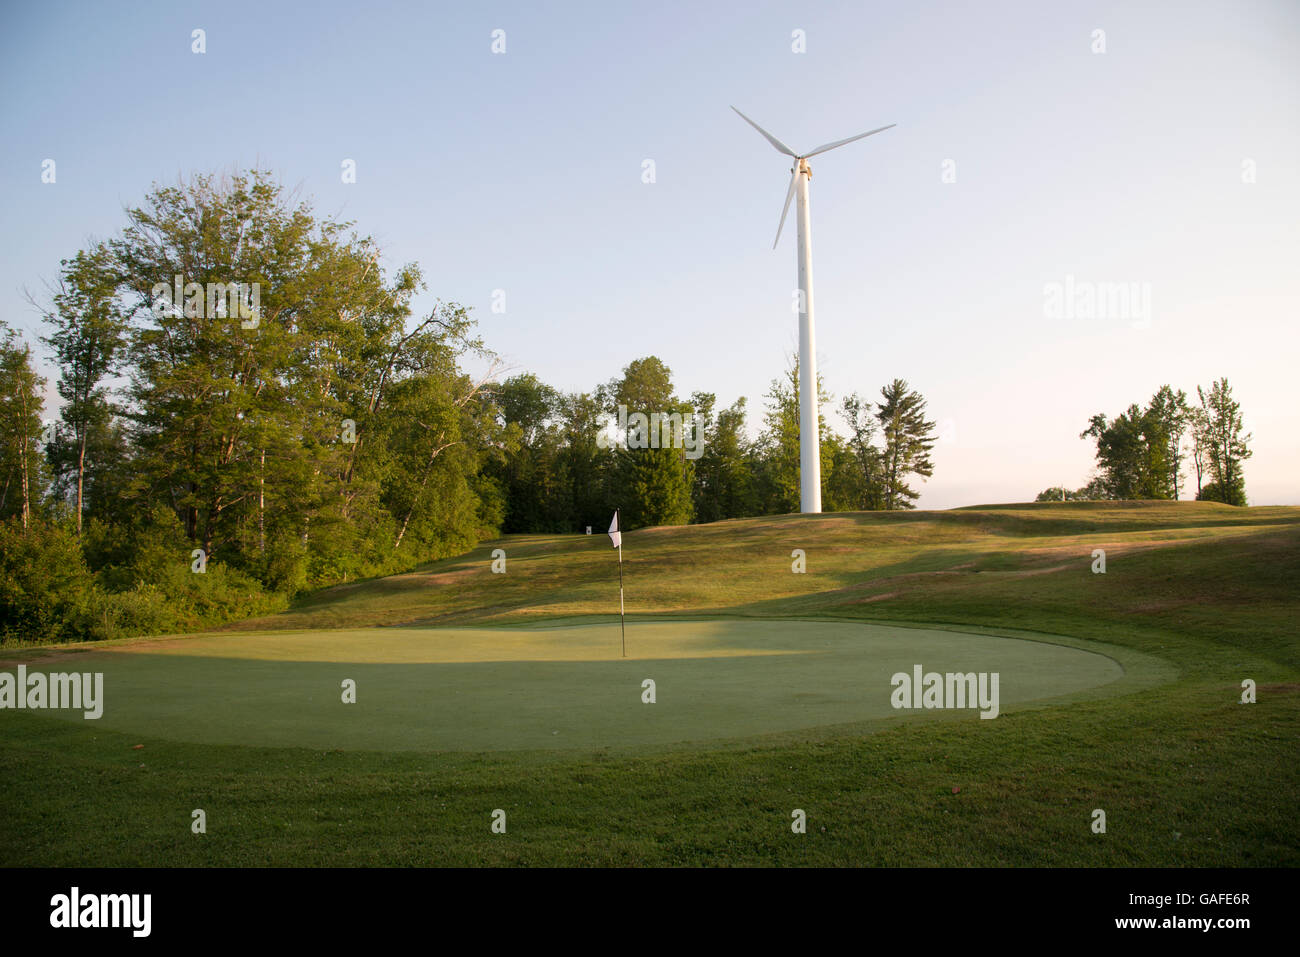 Wind turbine behind golf green in the White Mountain region of northern New Hampshire, early morning, summer time - Stock Image